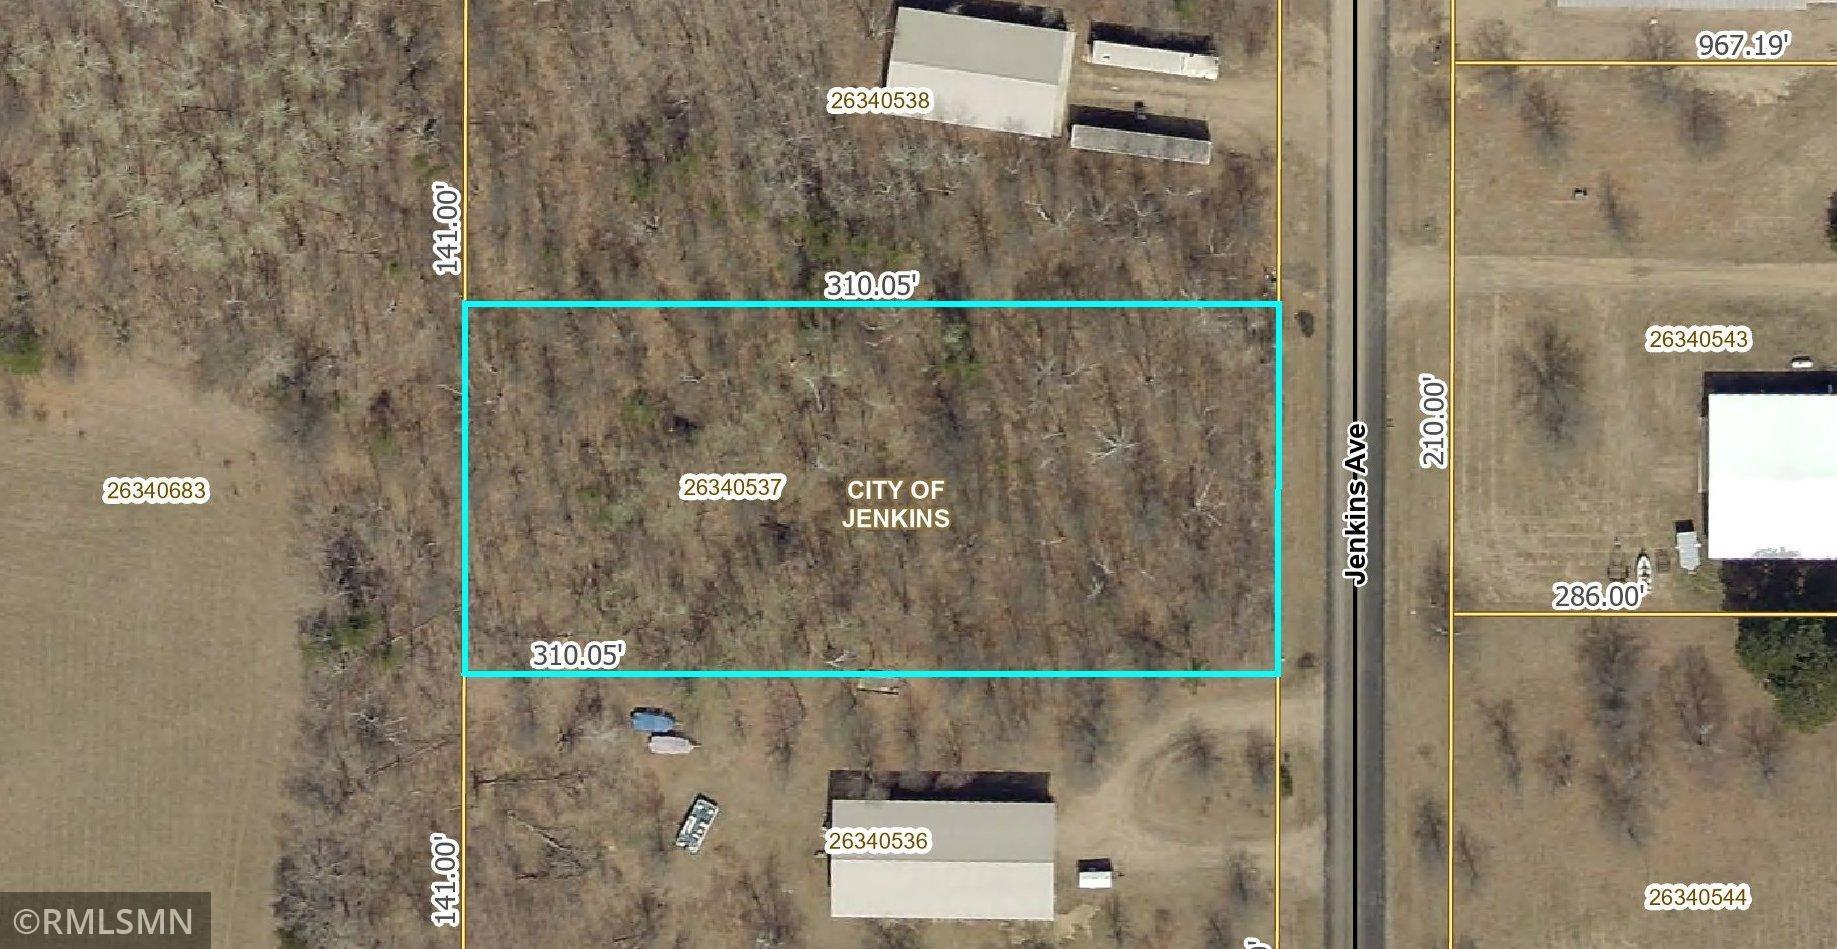 PRIME 1 ACRE COMMERCIAL LOT IN JENKINS BUSINESS PARK W/ EXCELLENT HIGHWAY ACCESS AND GOOD BLACK TOP FRONTAGE.